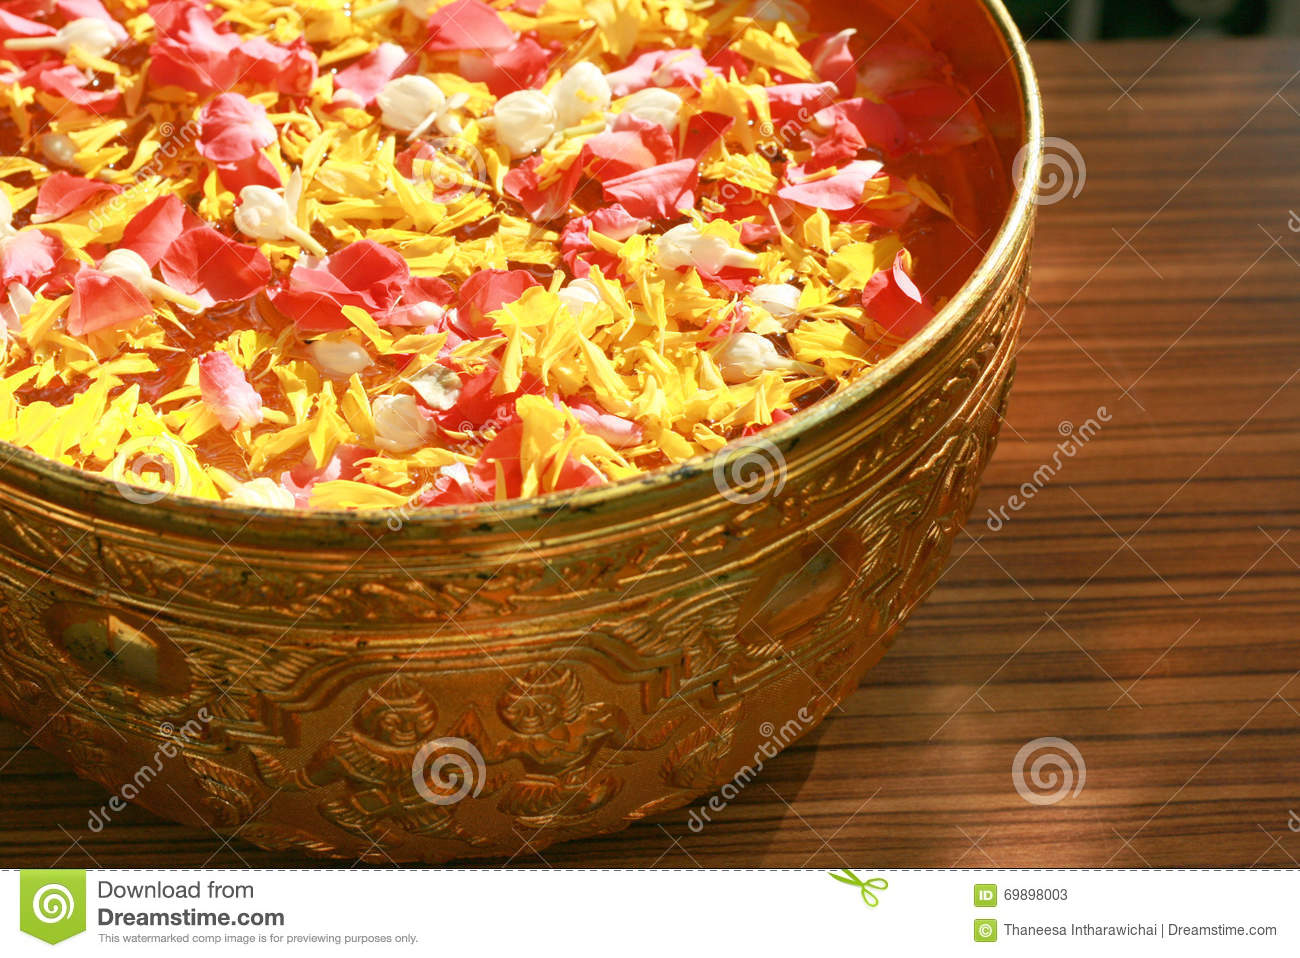 Colorful petals floating on water in golden bowl for pouring on the respected person s hand in Songkran festival